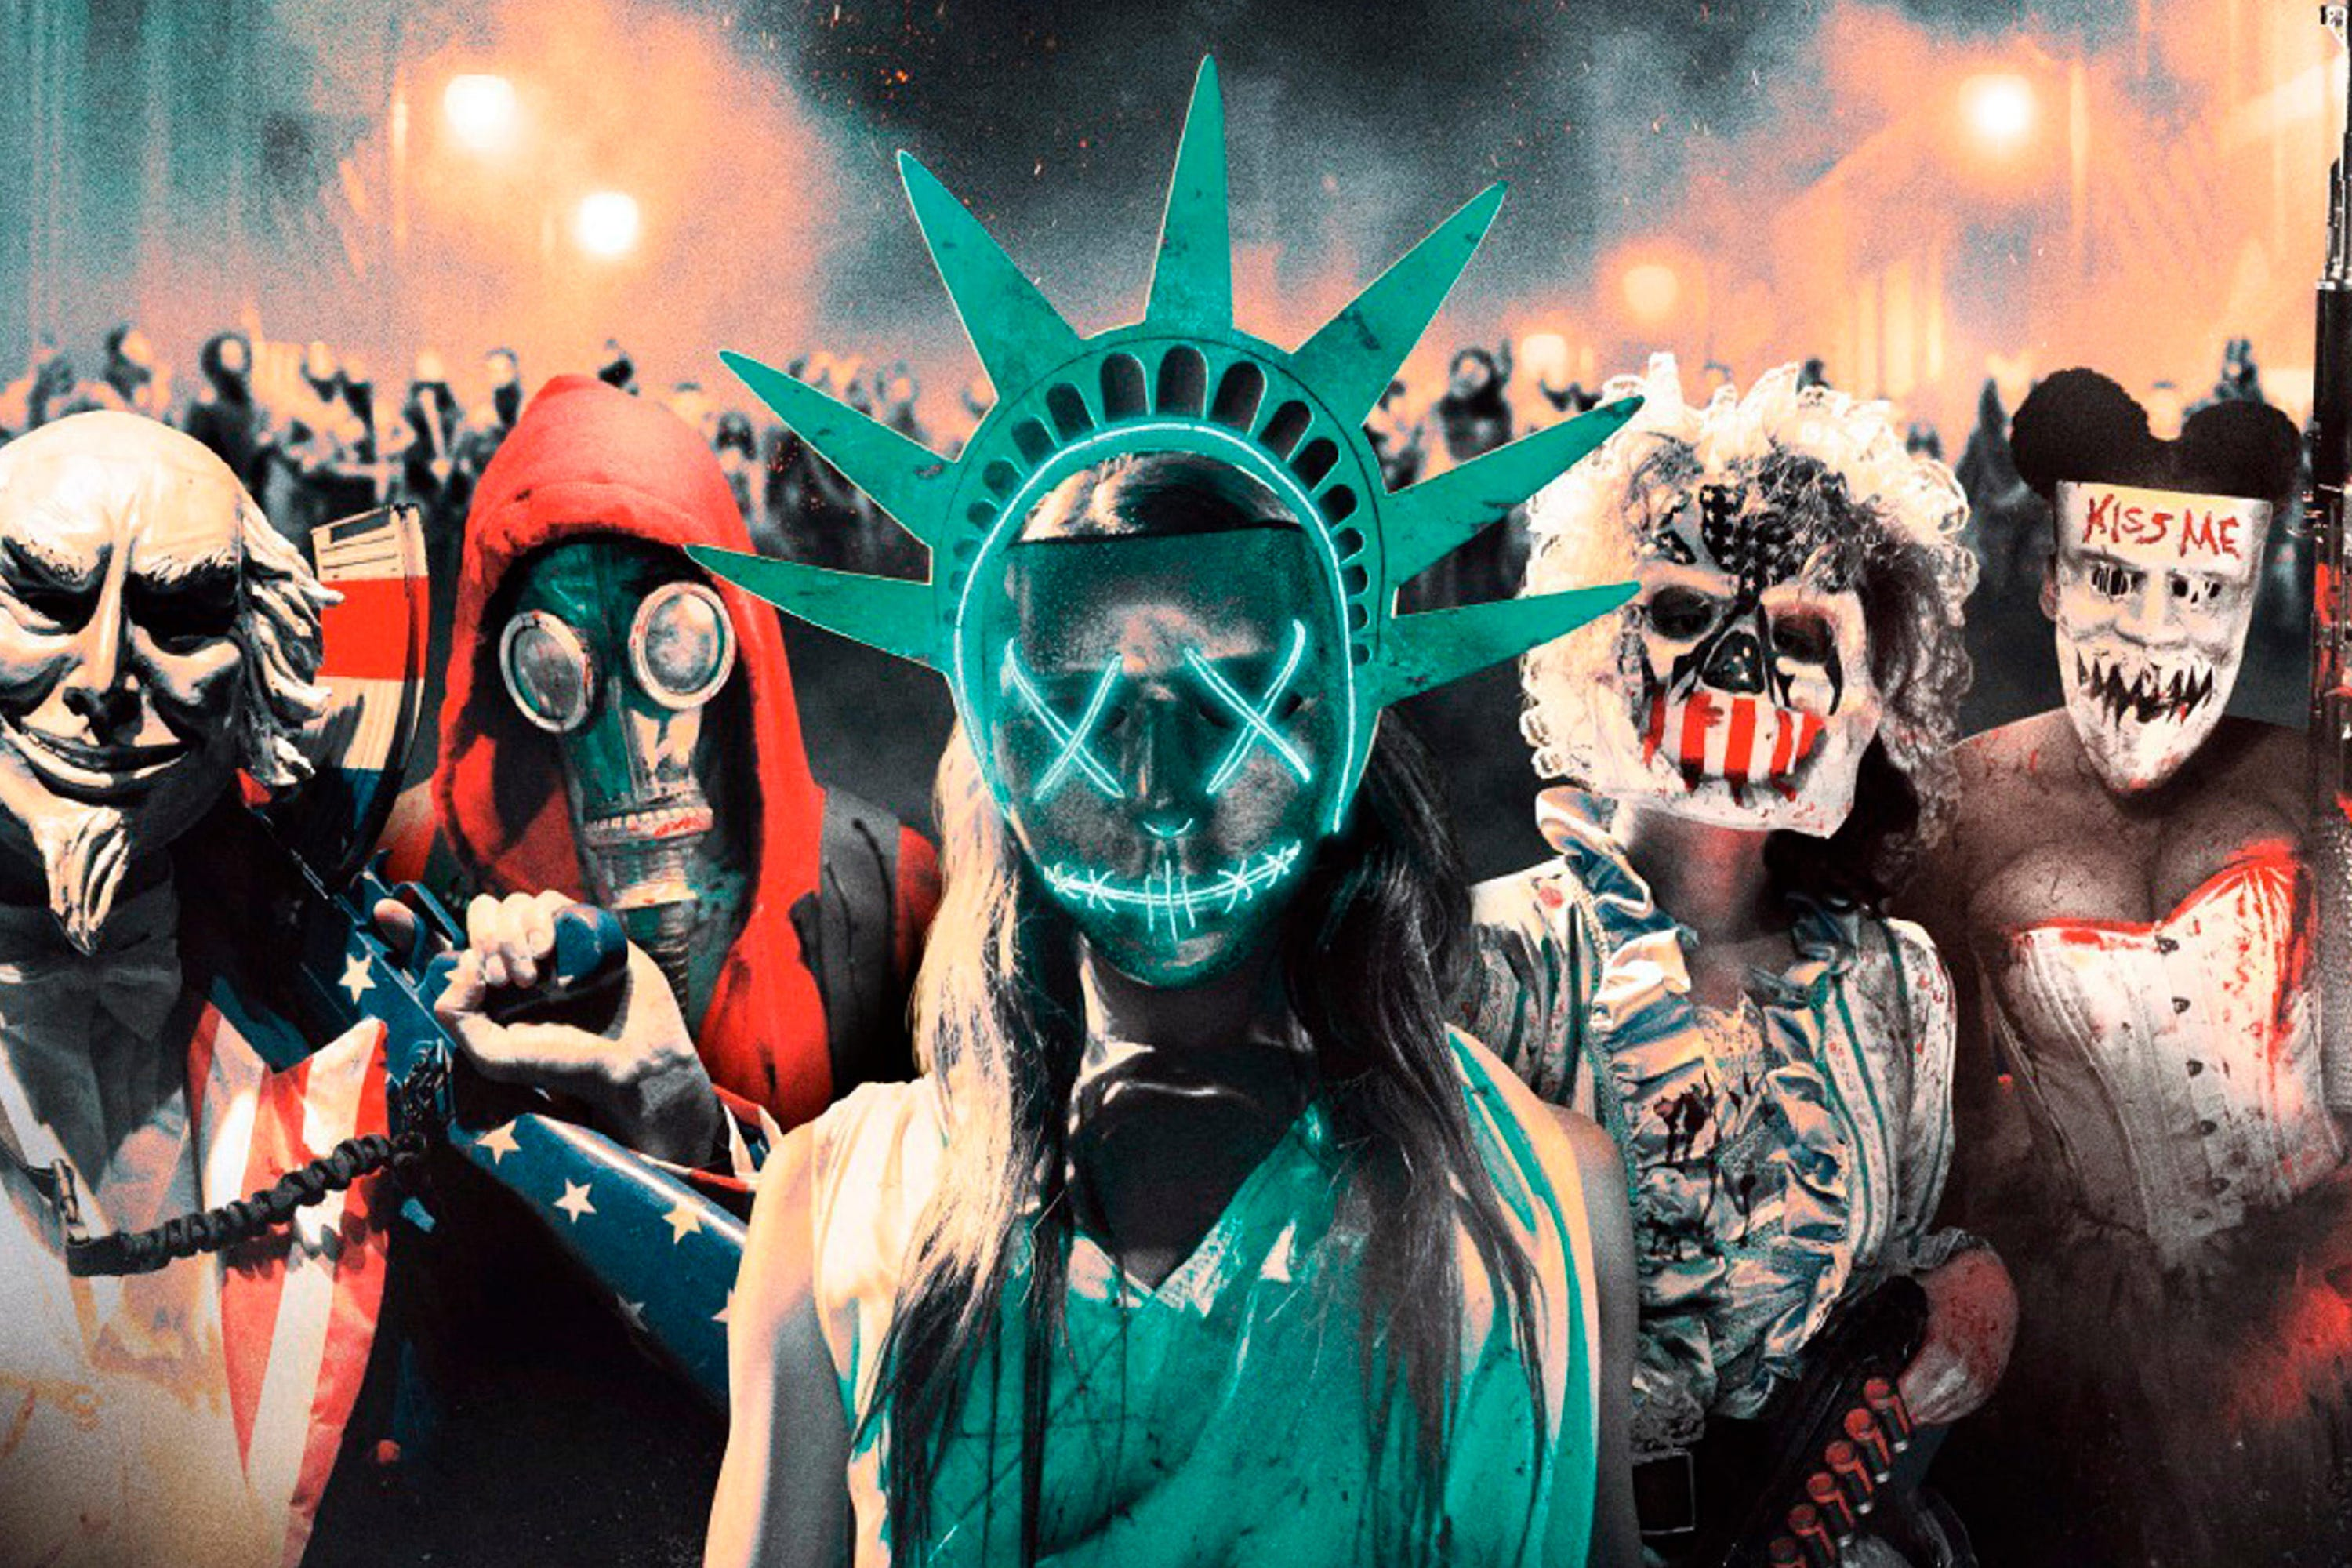 the purge halloween costume ideas- candy girl, masks